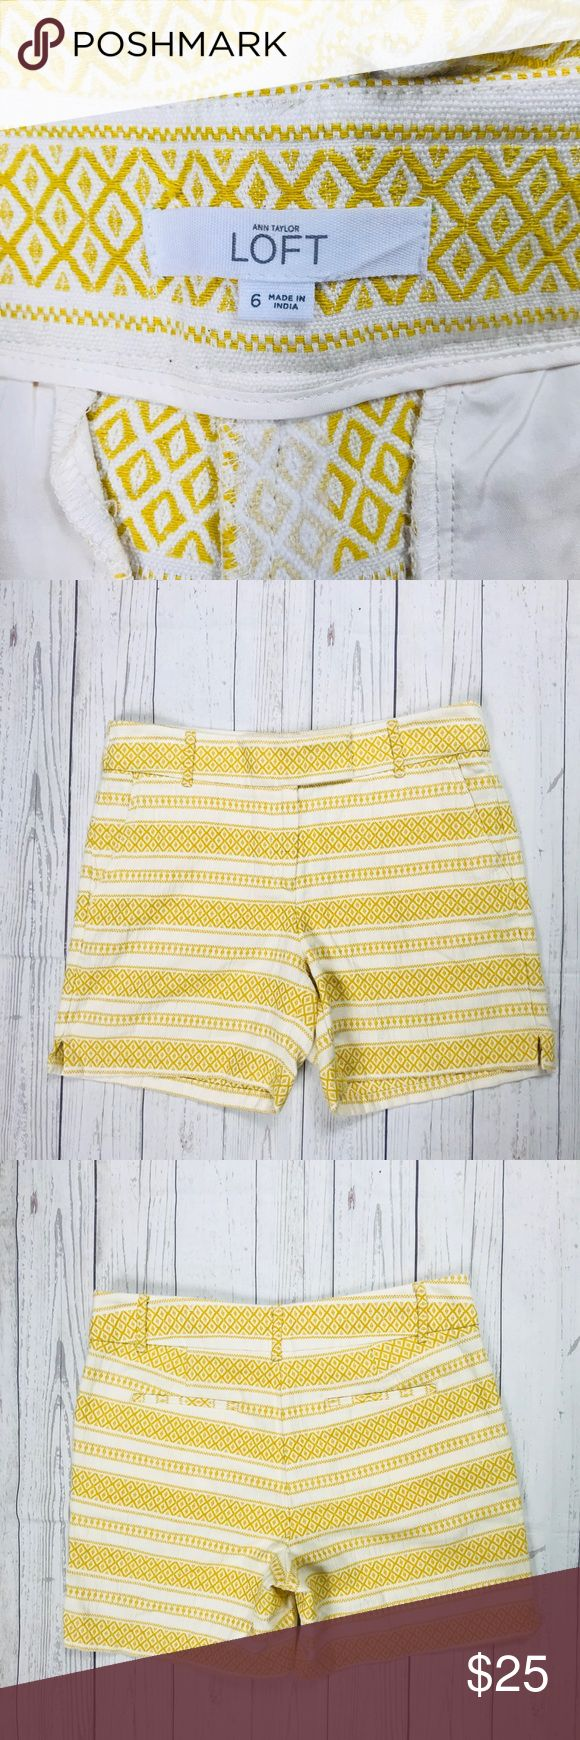 Ann Taylor Loft Riviera Shorts Size 6 Yellow Cream Measurements Approximate Laying Flat  Waist 17  Hips 20  Length 6  No rips, stains or missing buttons  Ann Taylor Loft The Limited Express New York and Company Summer Spring LOFT Shorts